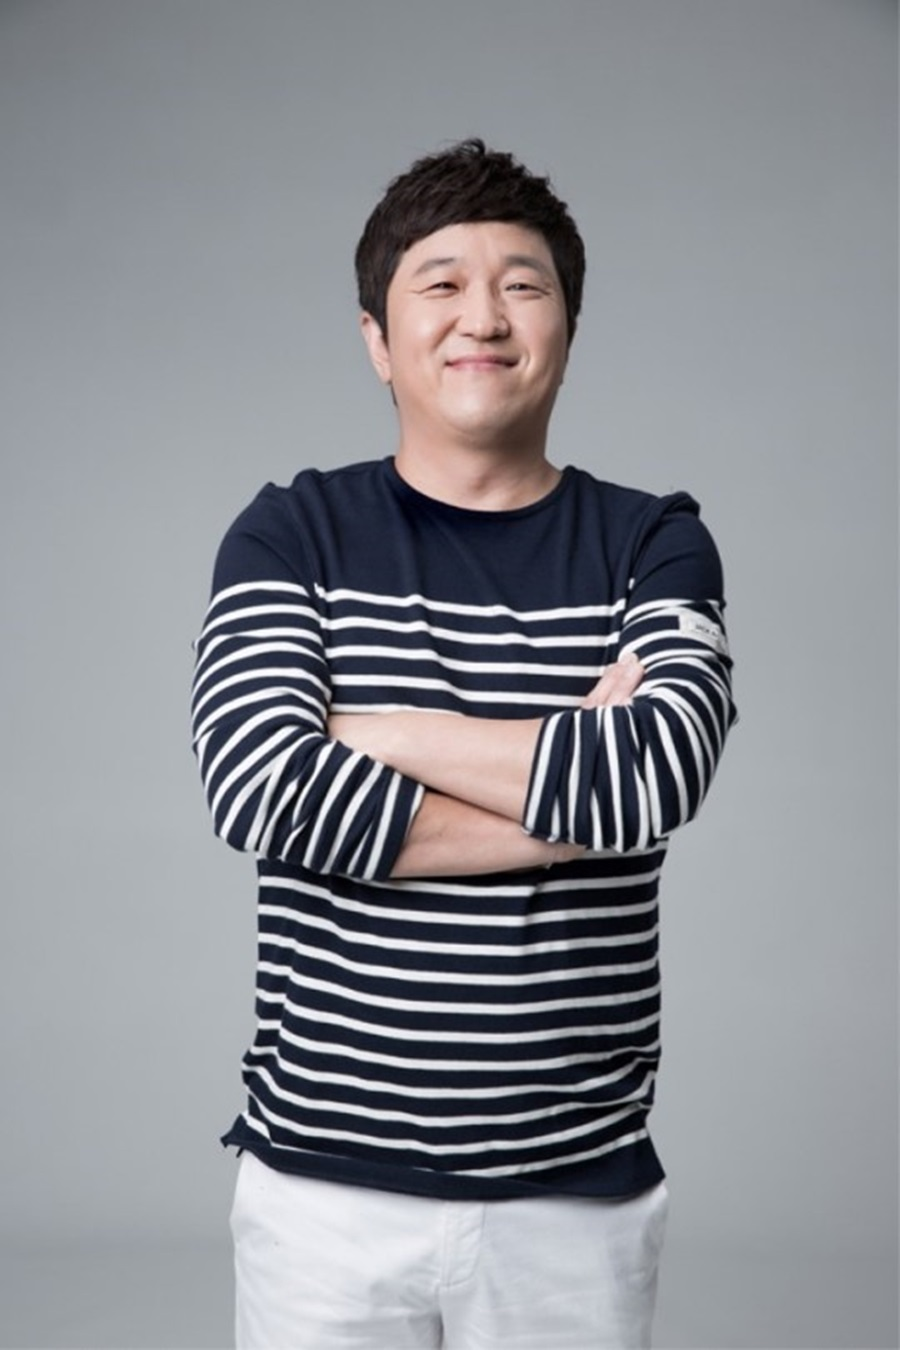 Fans Feel Uncomfortable With How Violent Jung Hyung Don Is